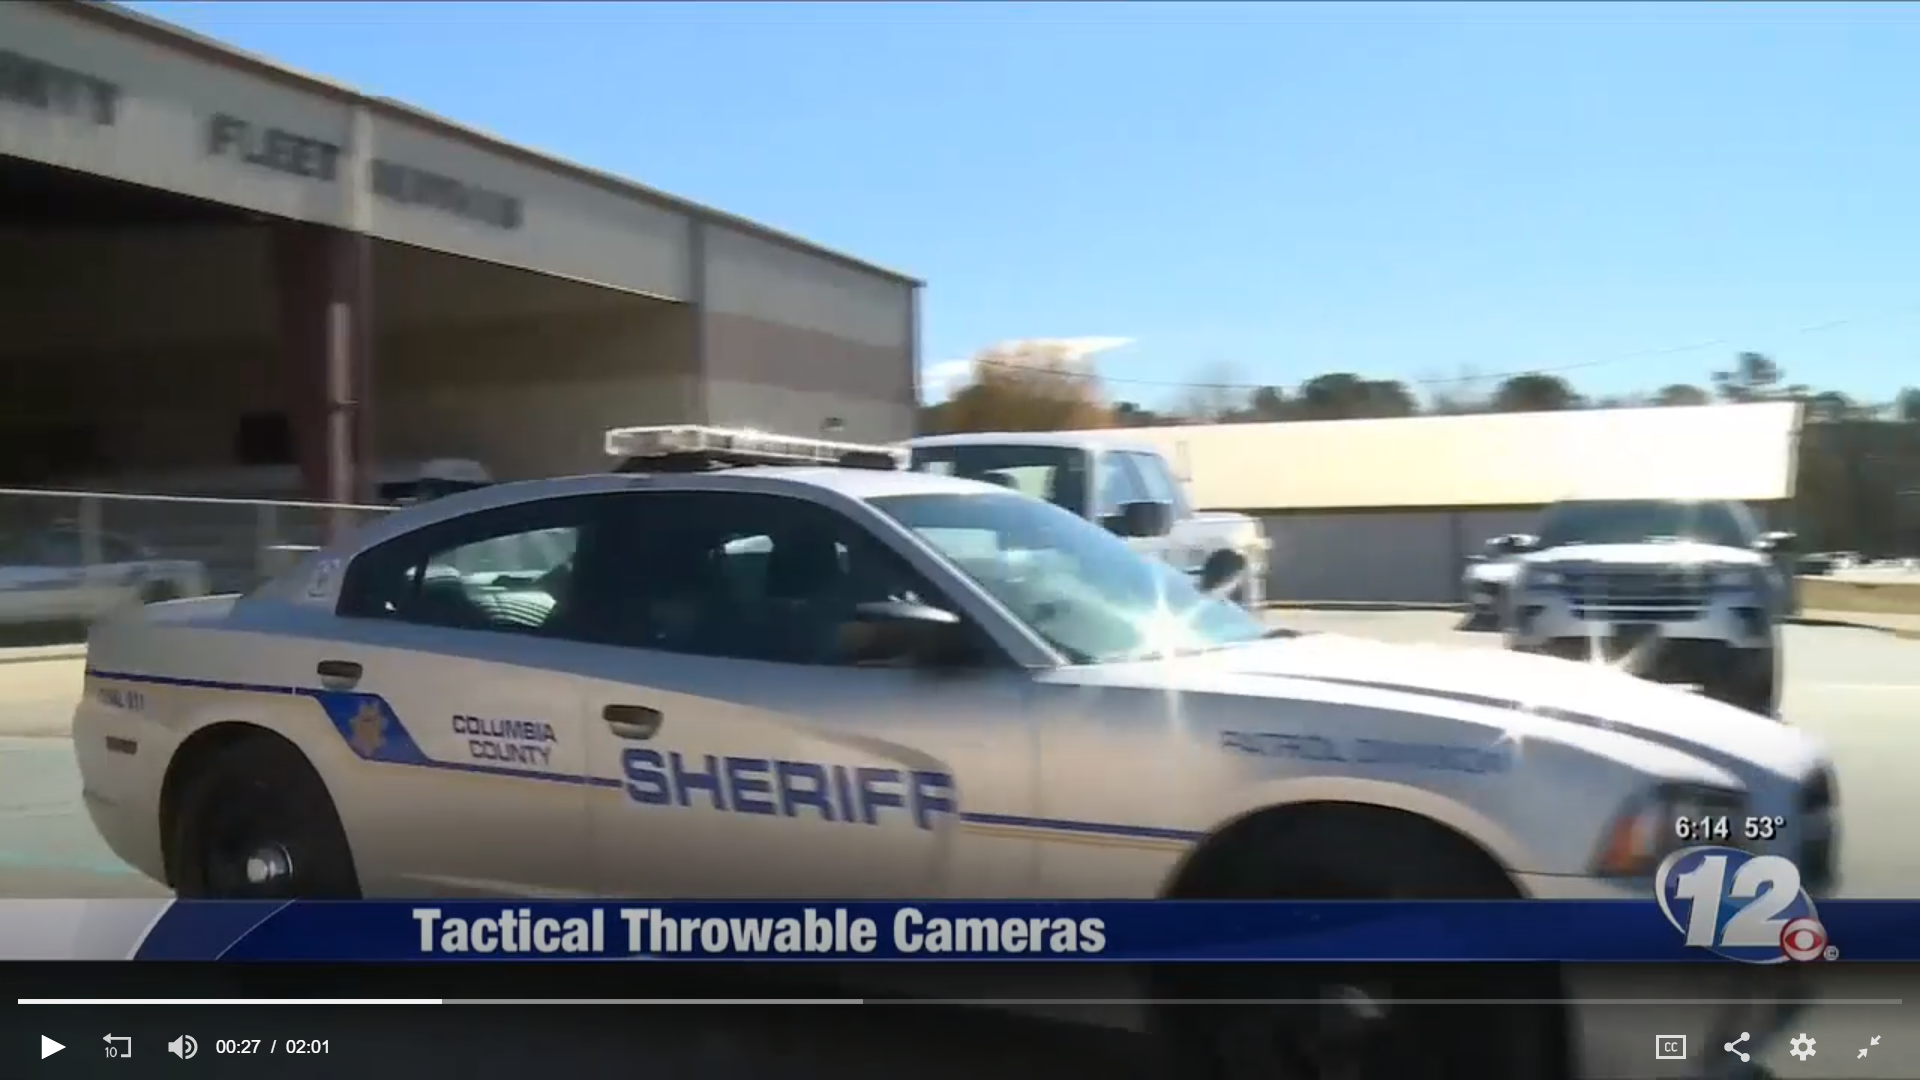 Columbia County, GA - Using our 4G cameras across police, fire, and